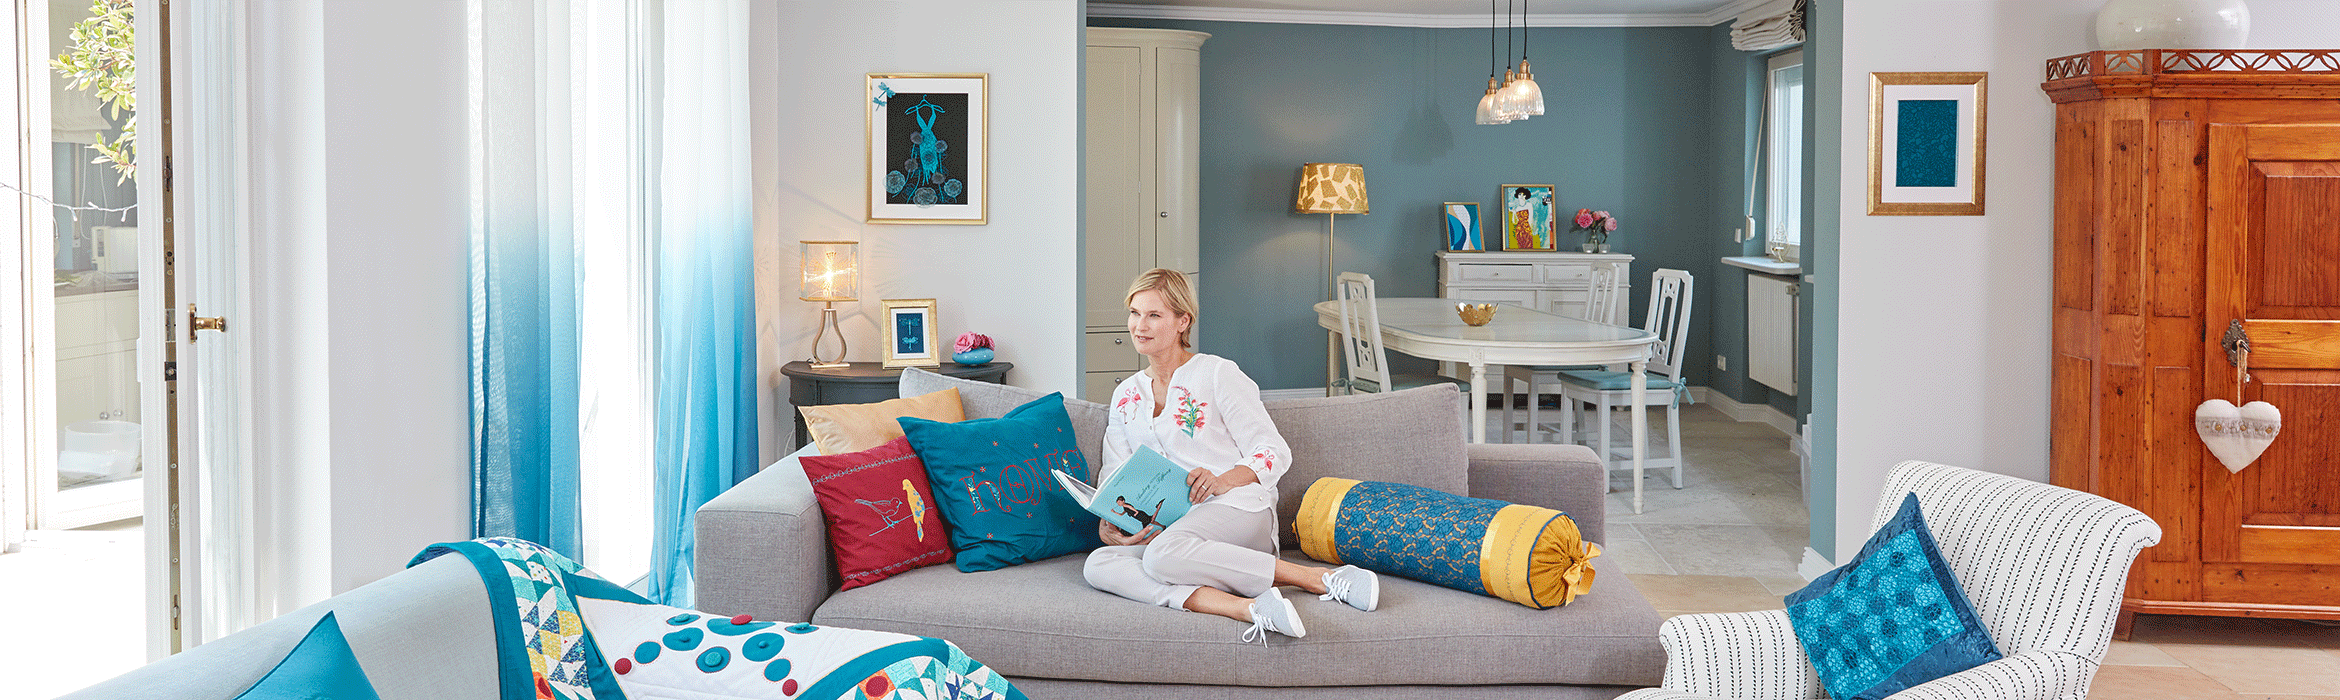 Living room with quilt, embroidered pillows and lady reading book